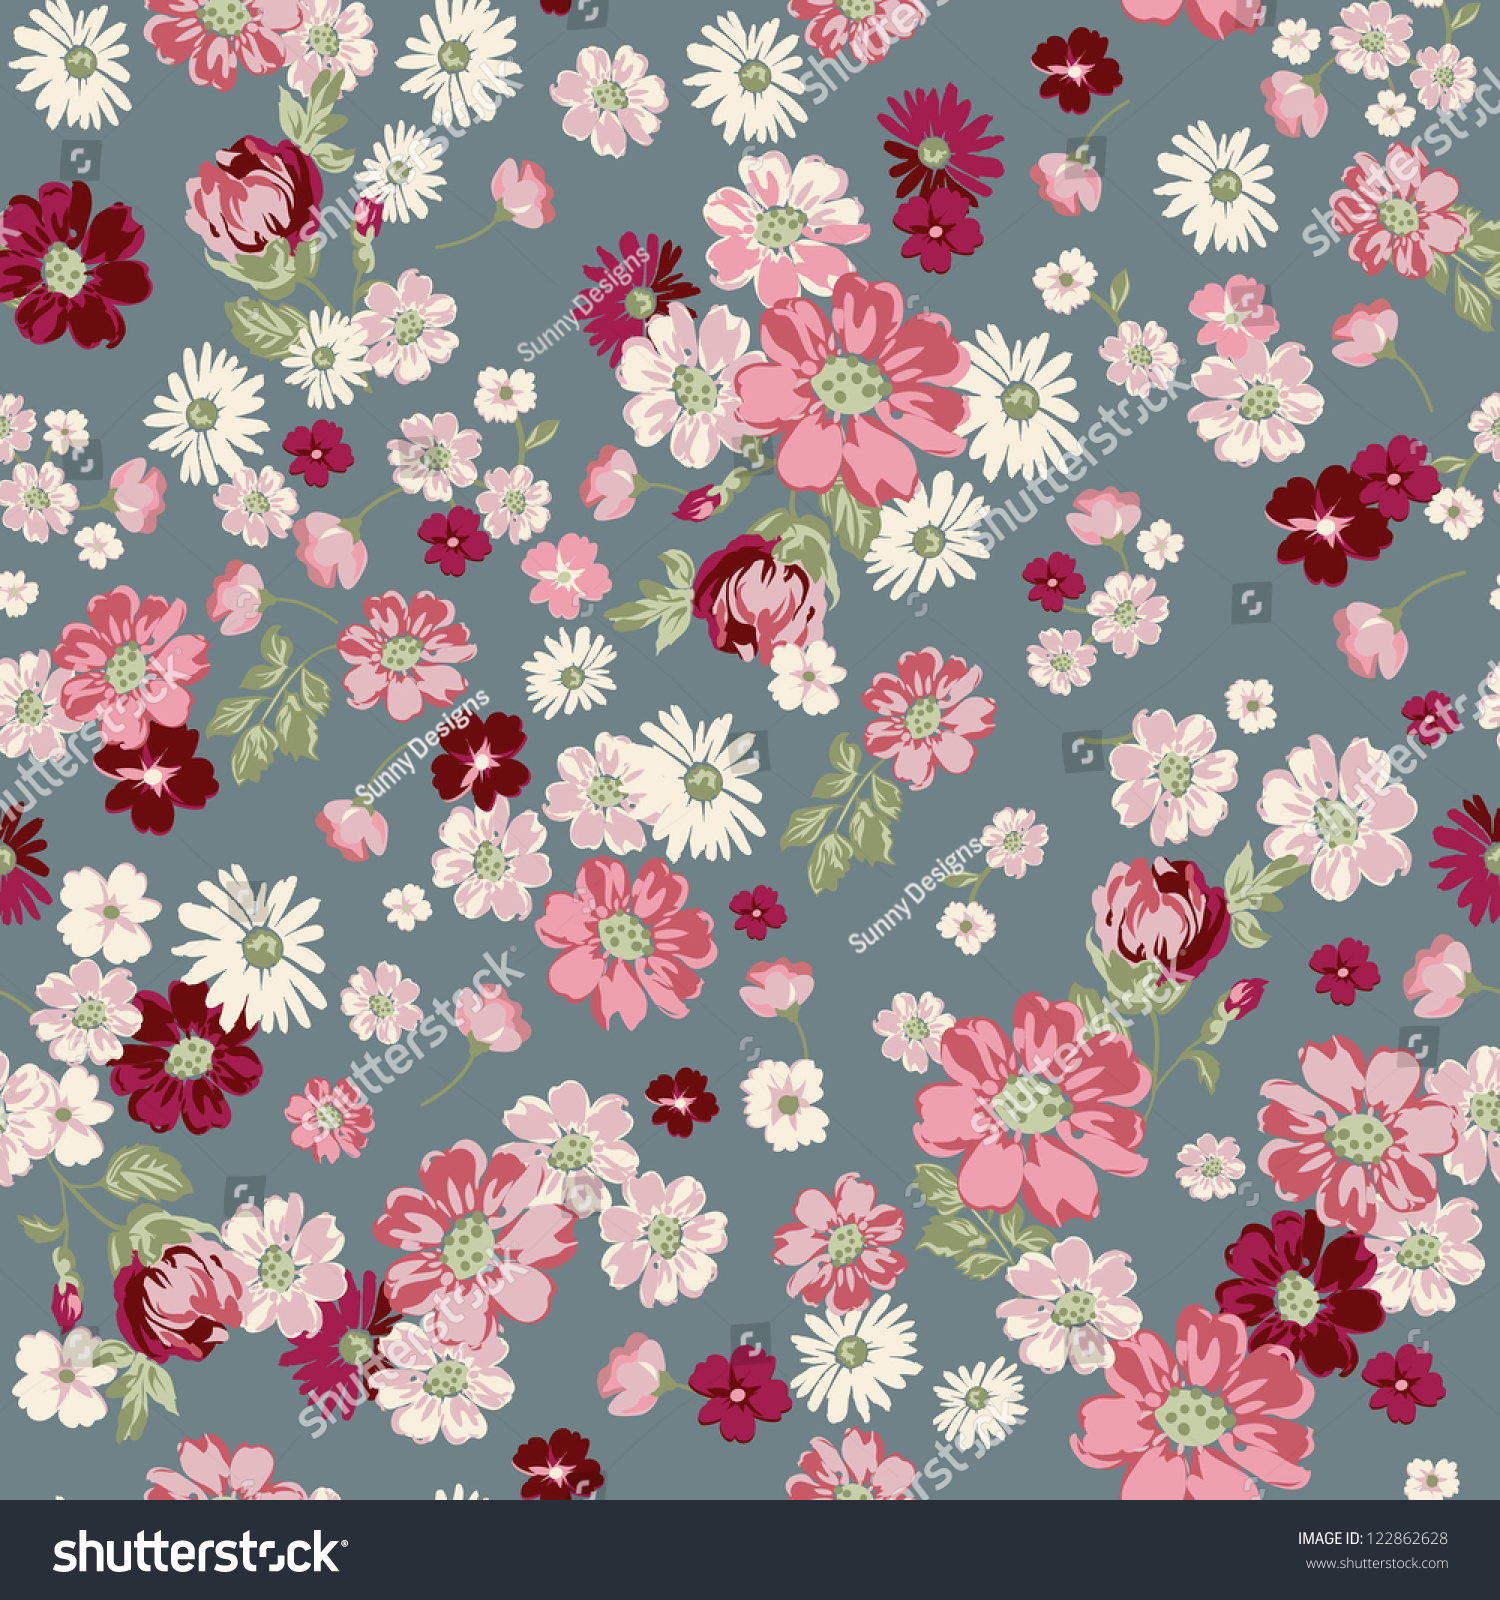 2015 Ditsy Floral Design: Seamless Vintage Floral Ditsy Background Stock Vector